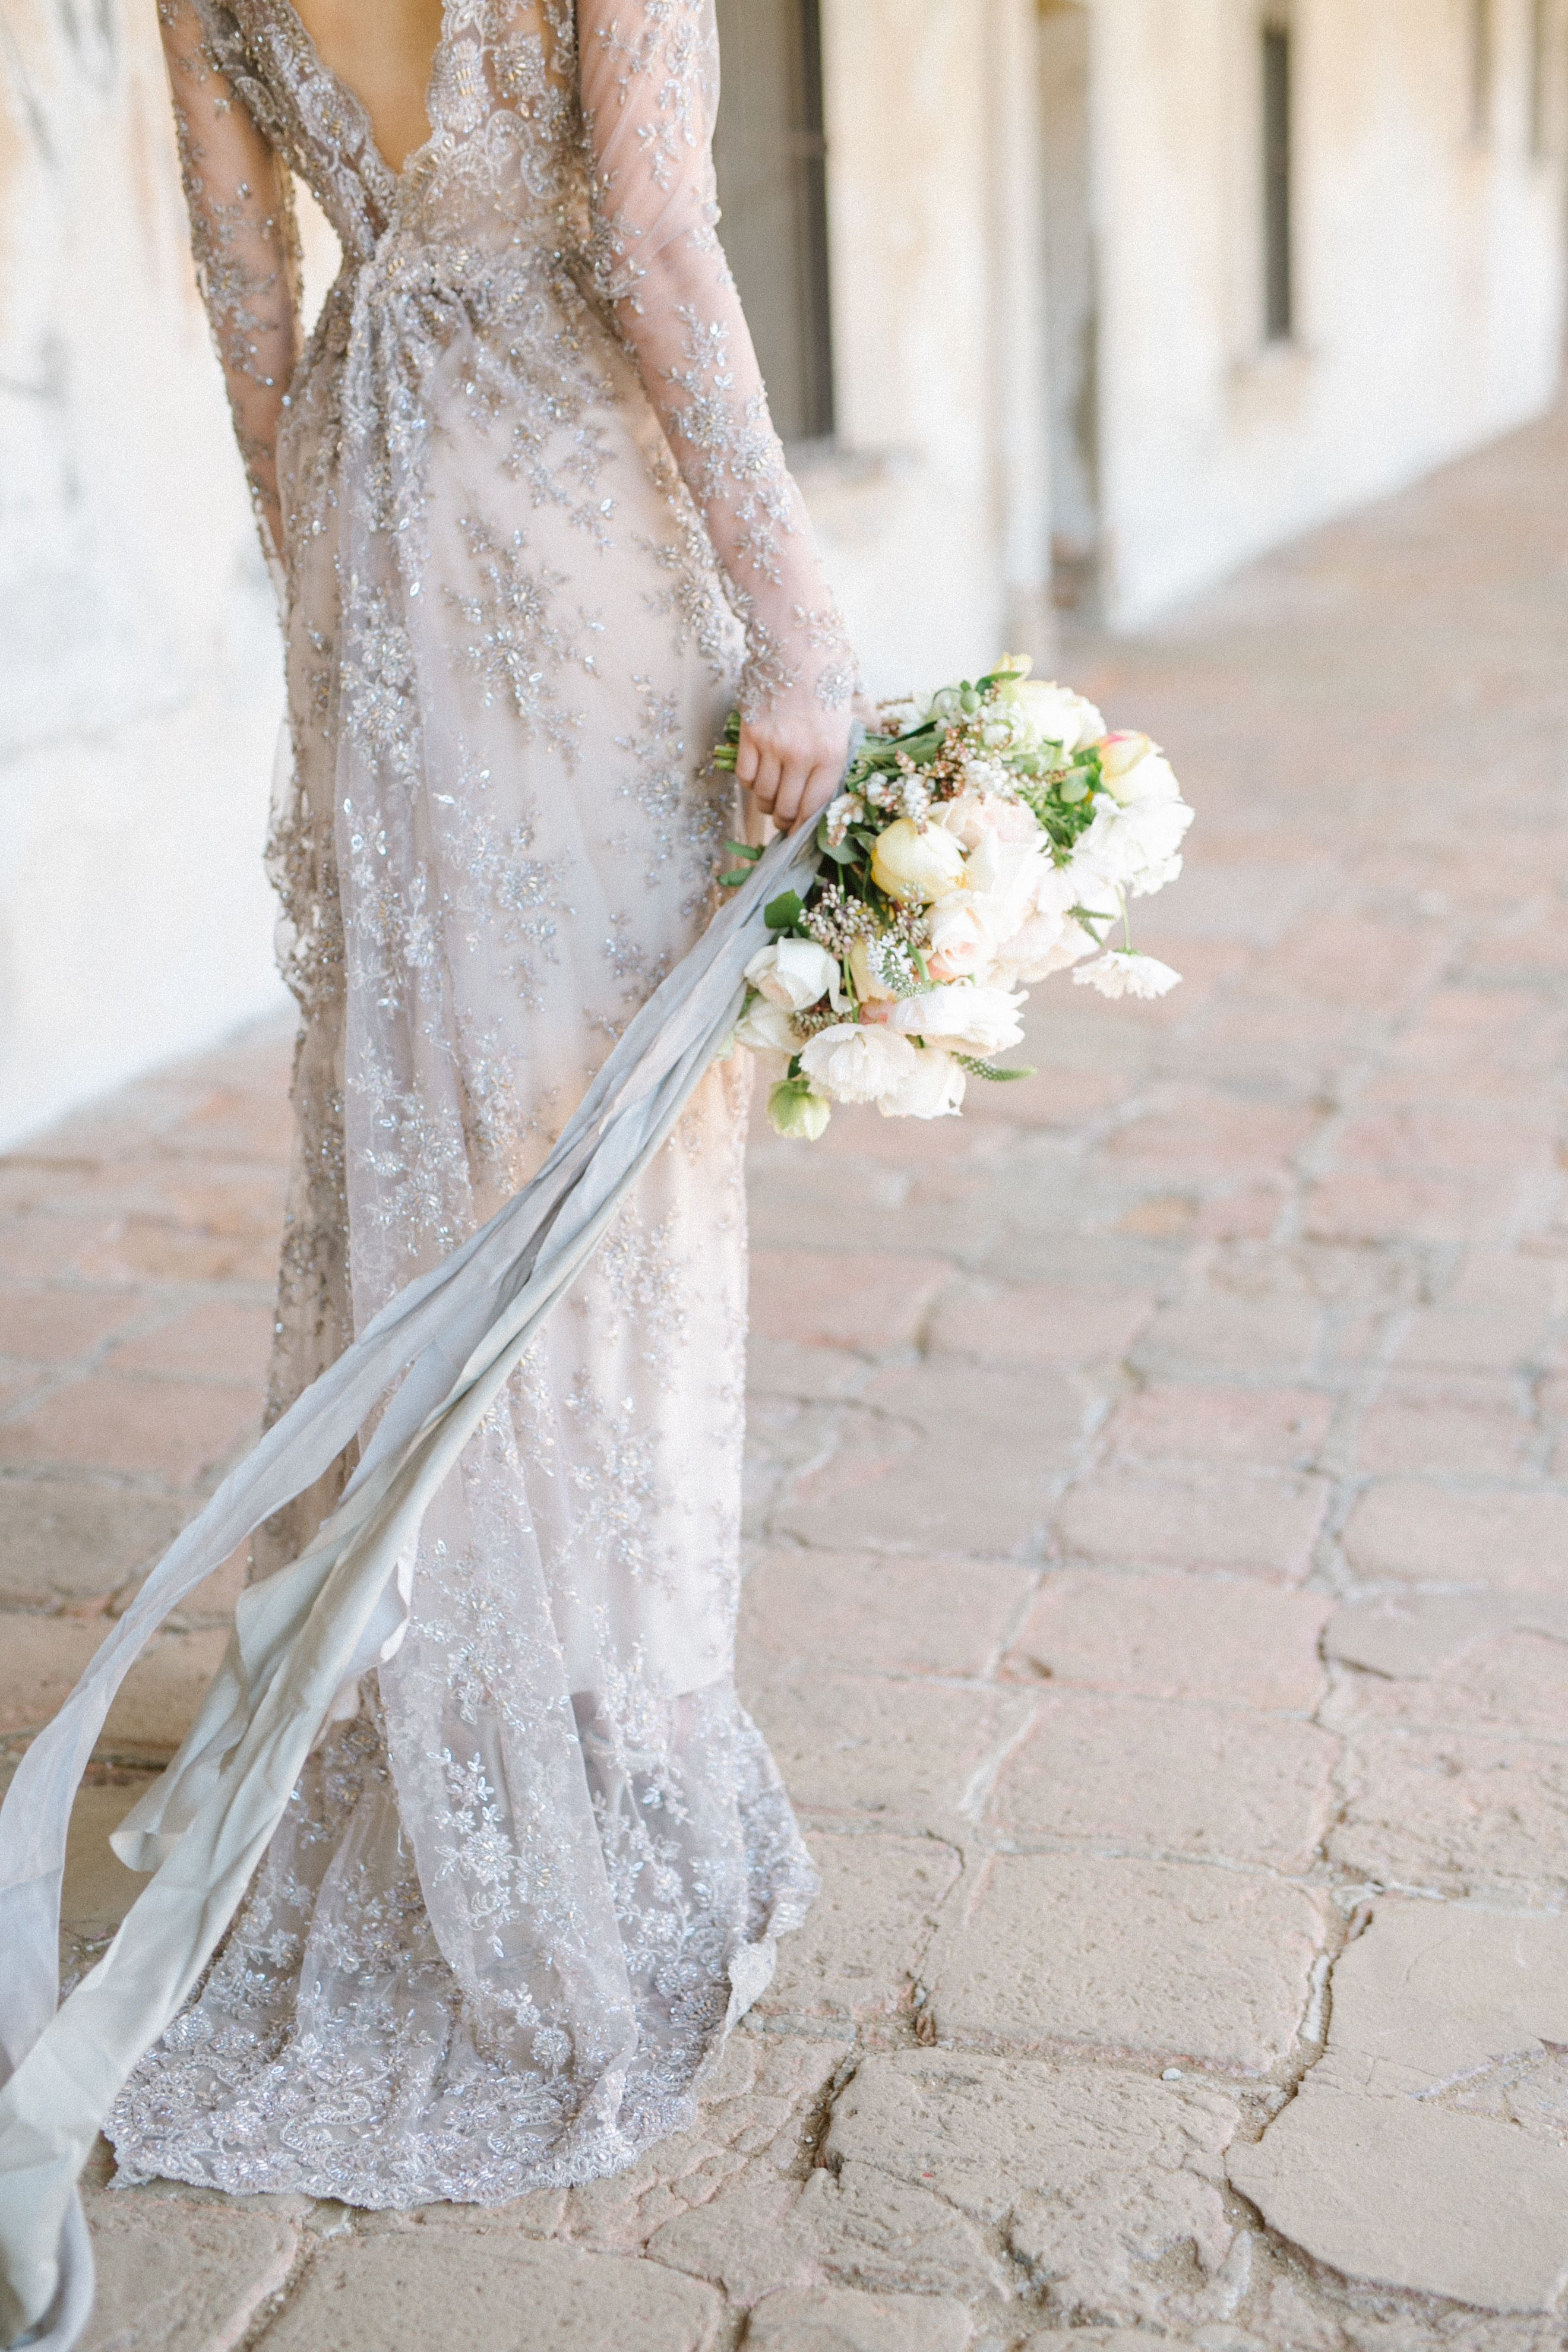 Cheap silver dresses for weddings  Blending Old  New for Unforgettable Bridal Style  Wedding